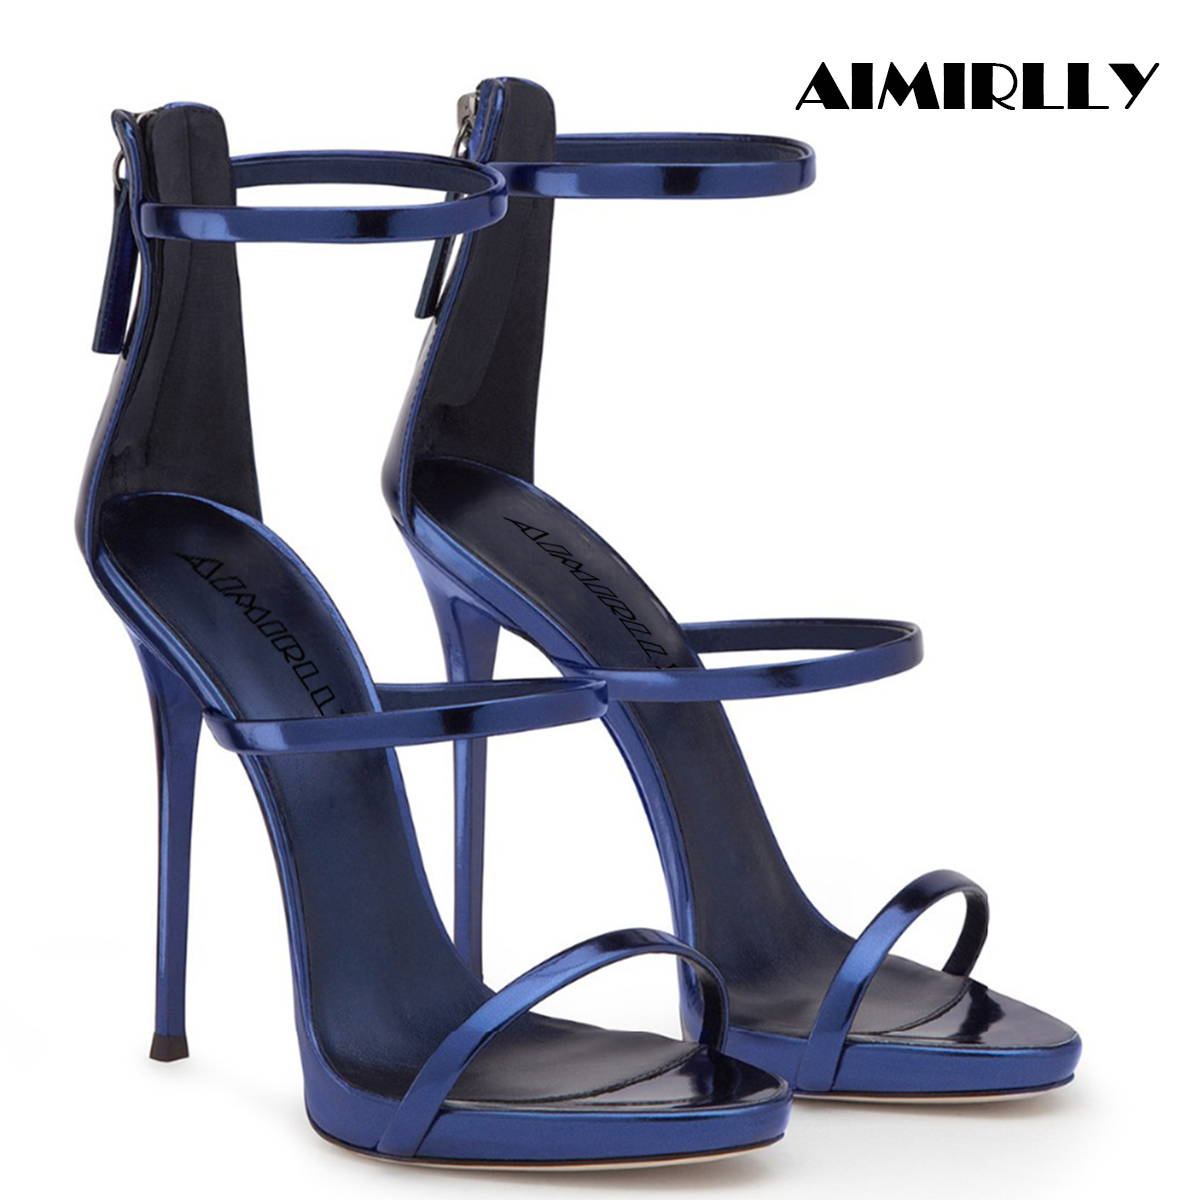 2019 Elegant Women Shoes Peep Toe High Heels Sandals Strappy Cover Heel Zipper Summer Party Dress Shoes2019 Elegant Women Shoes Peep Toe High Heels Sandals Strappy Cover Heel Zipper Summer Party Dress Shoes